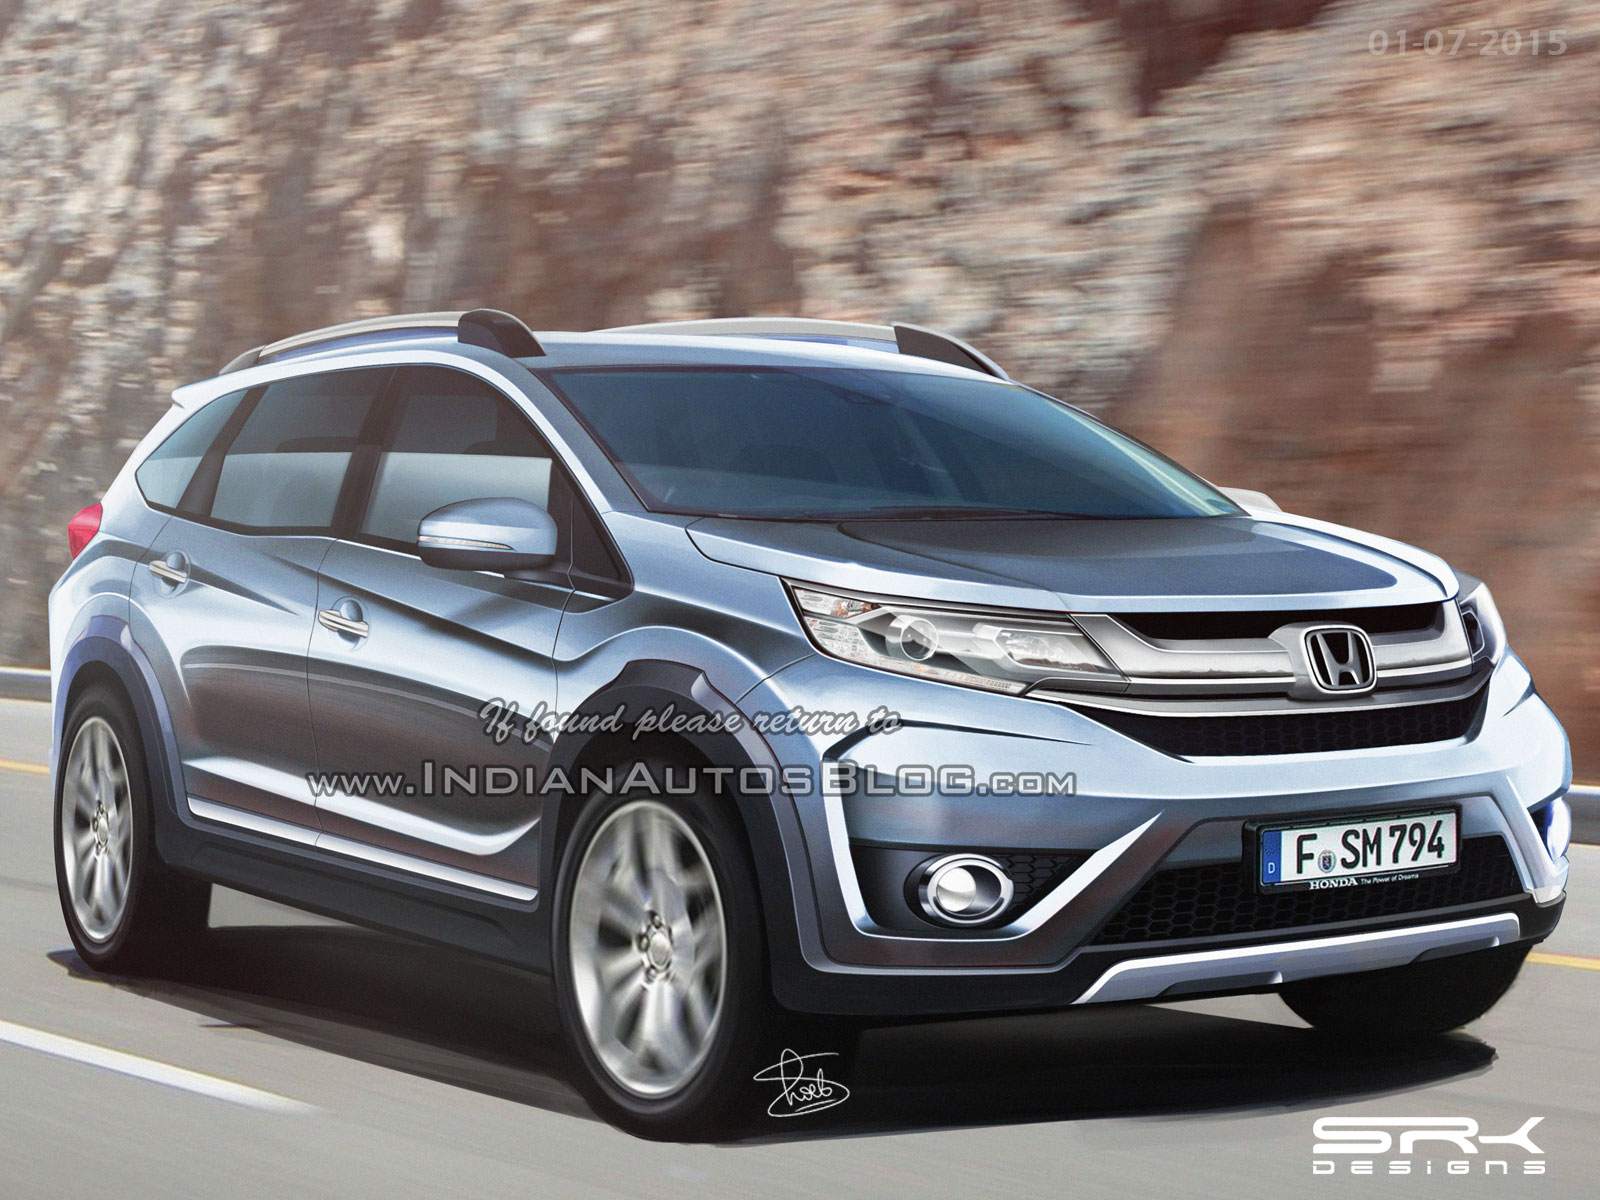 The All New Honda Br V Renders And Speculated Price